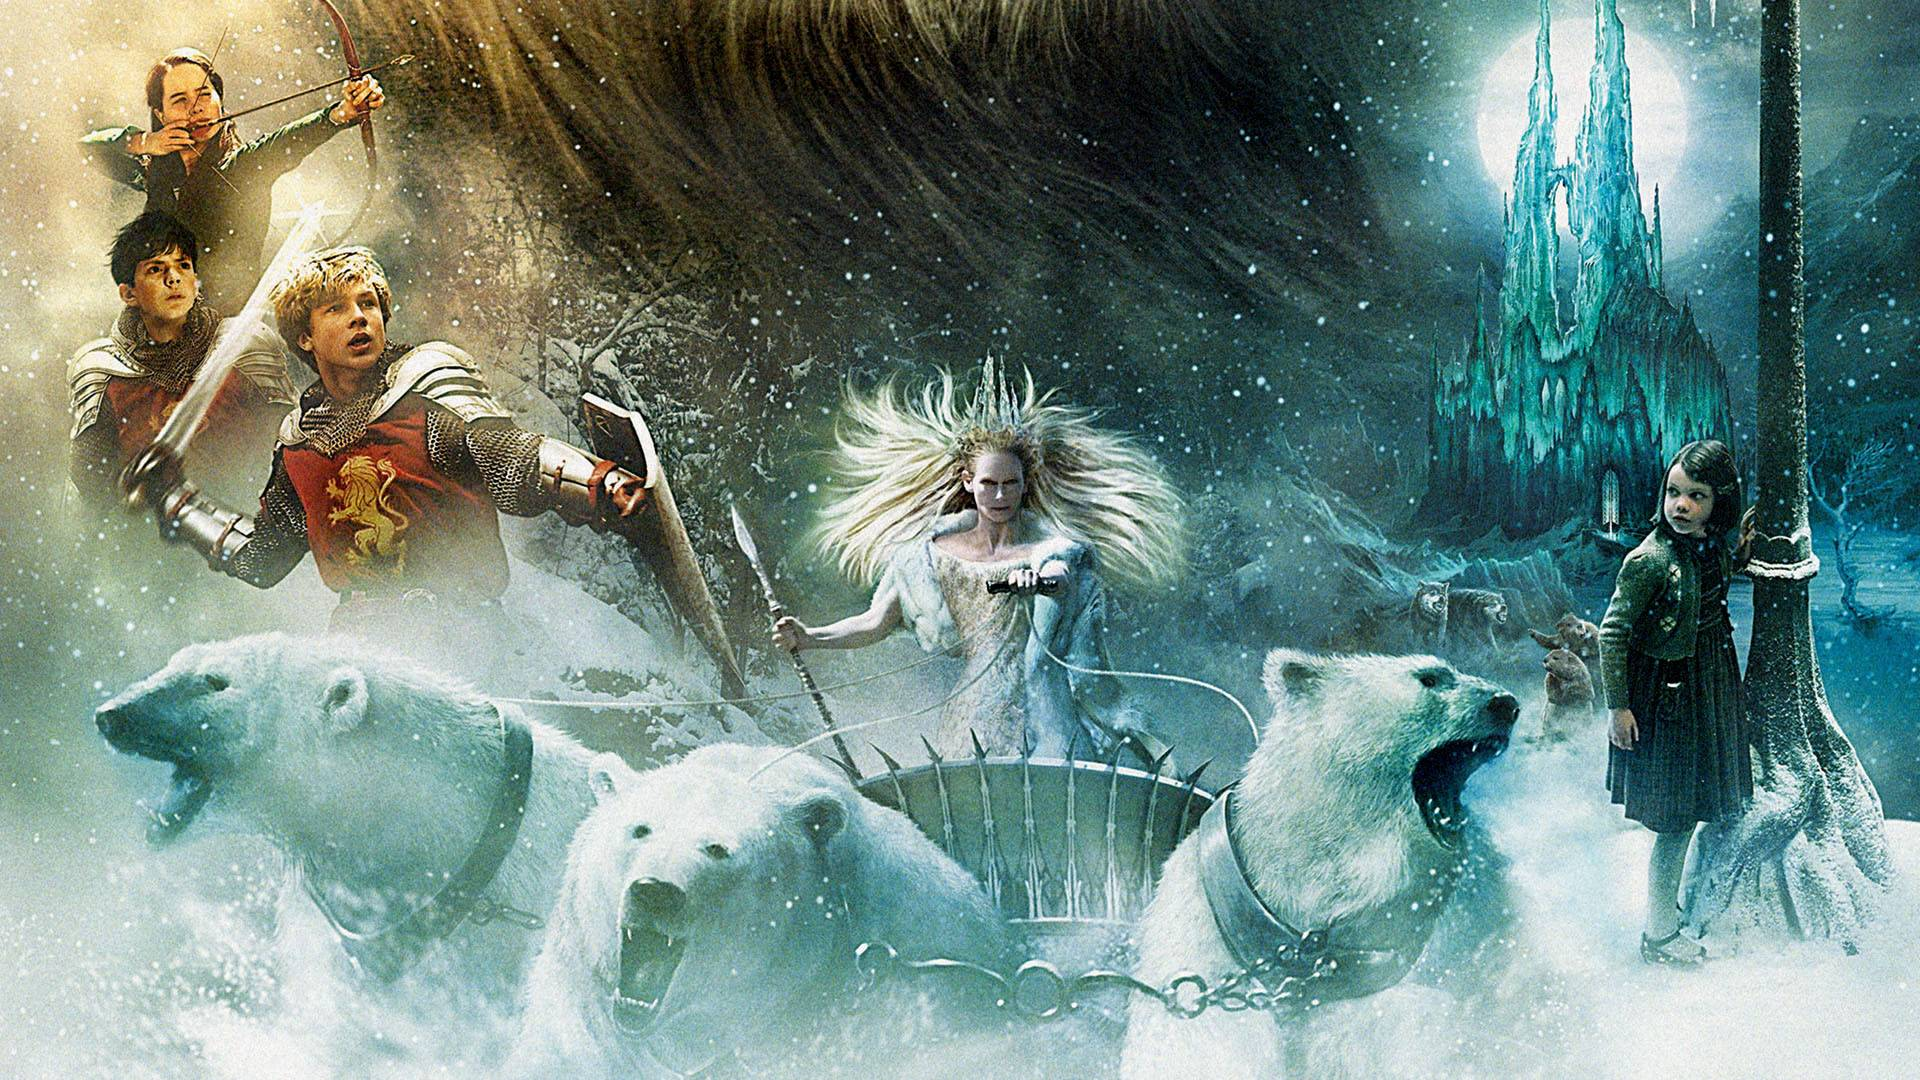 Chronicles of narnia wallpaper   SF Wallpaper 1920x1080